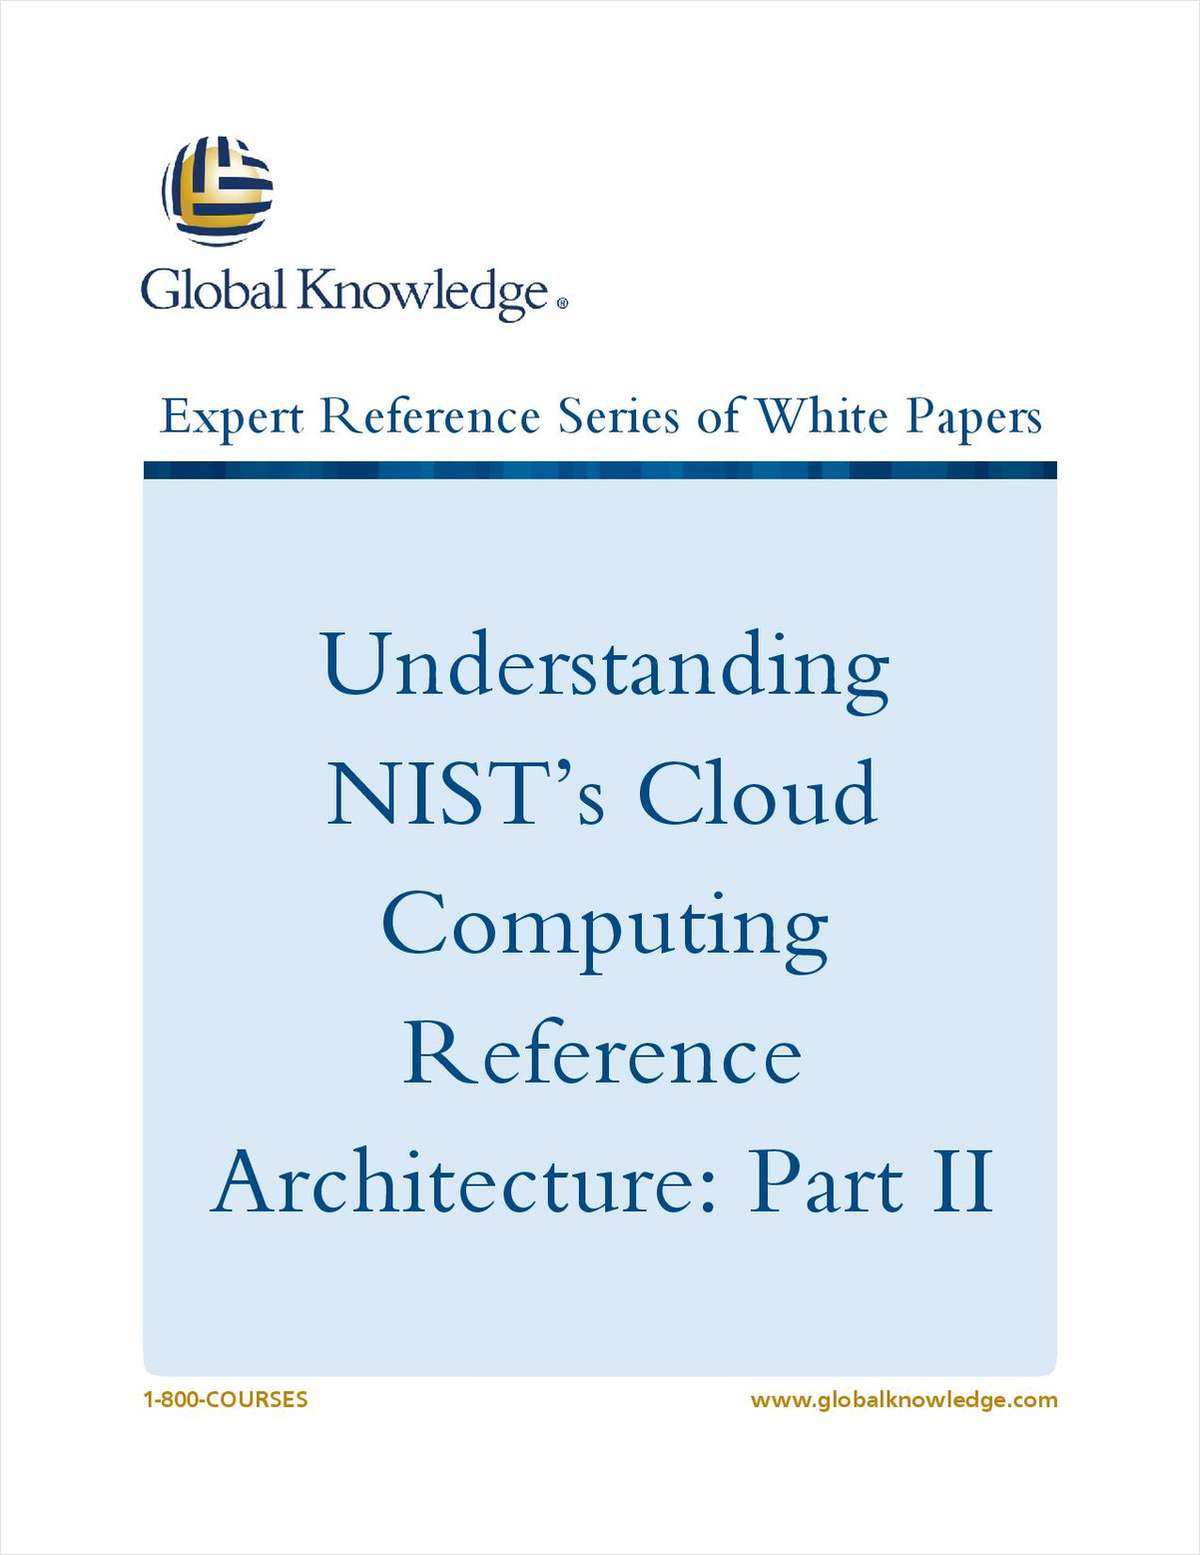 Understanding NIST's Cloud Computing Reference Architecture: Part II